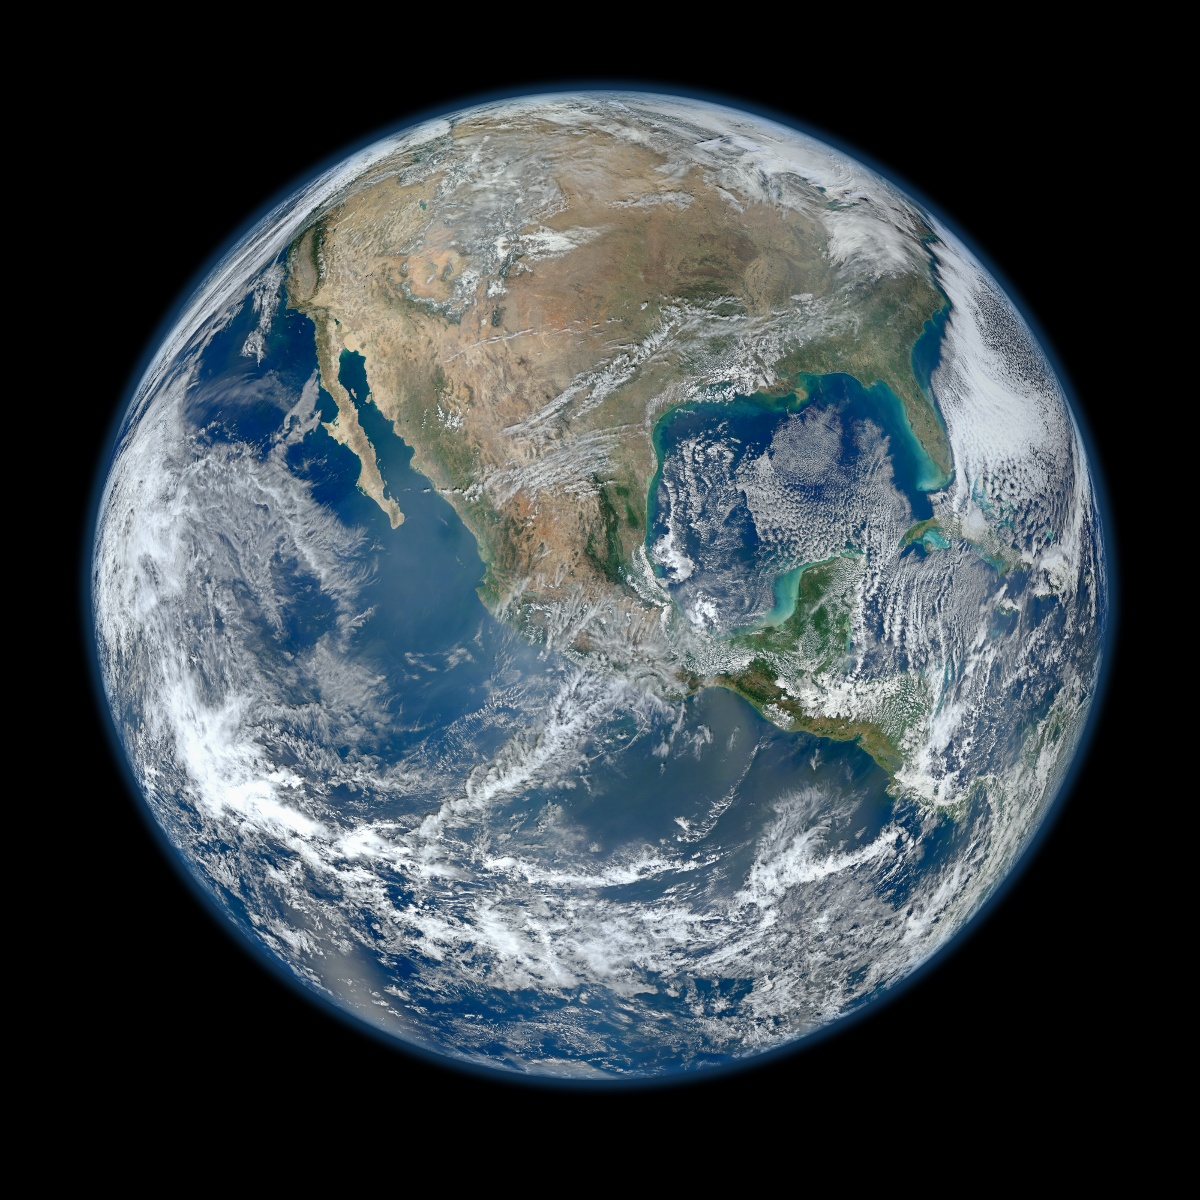 http://www.nasa.gov/images/content/617883main_VIIRS_4Jan2012.small.jpg